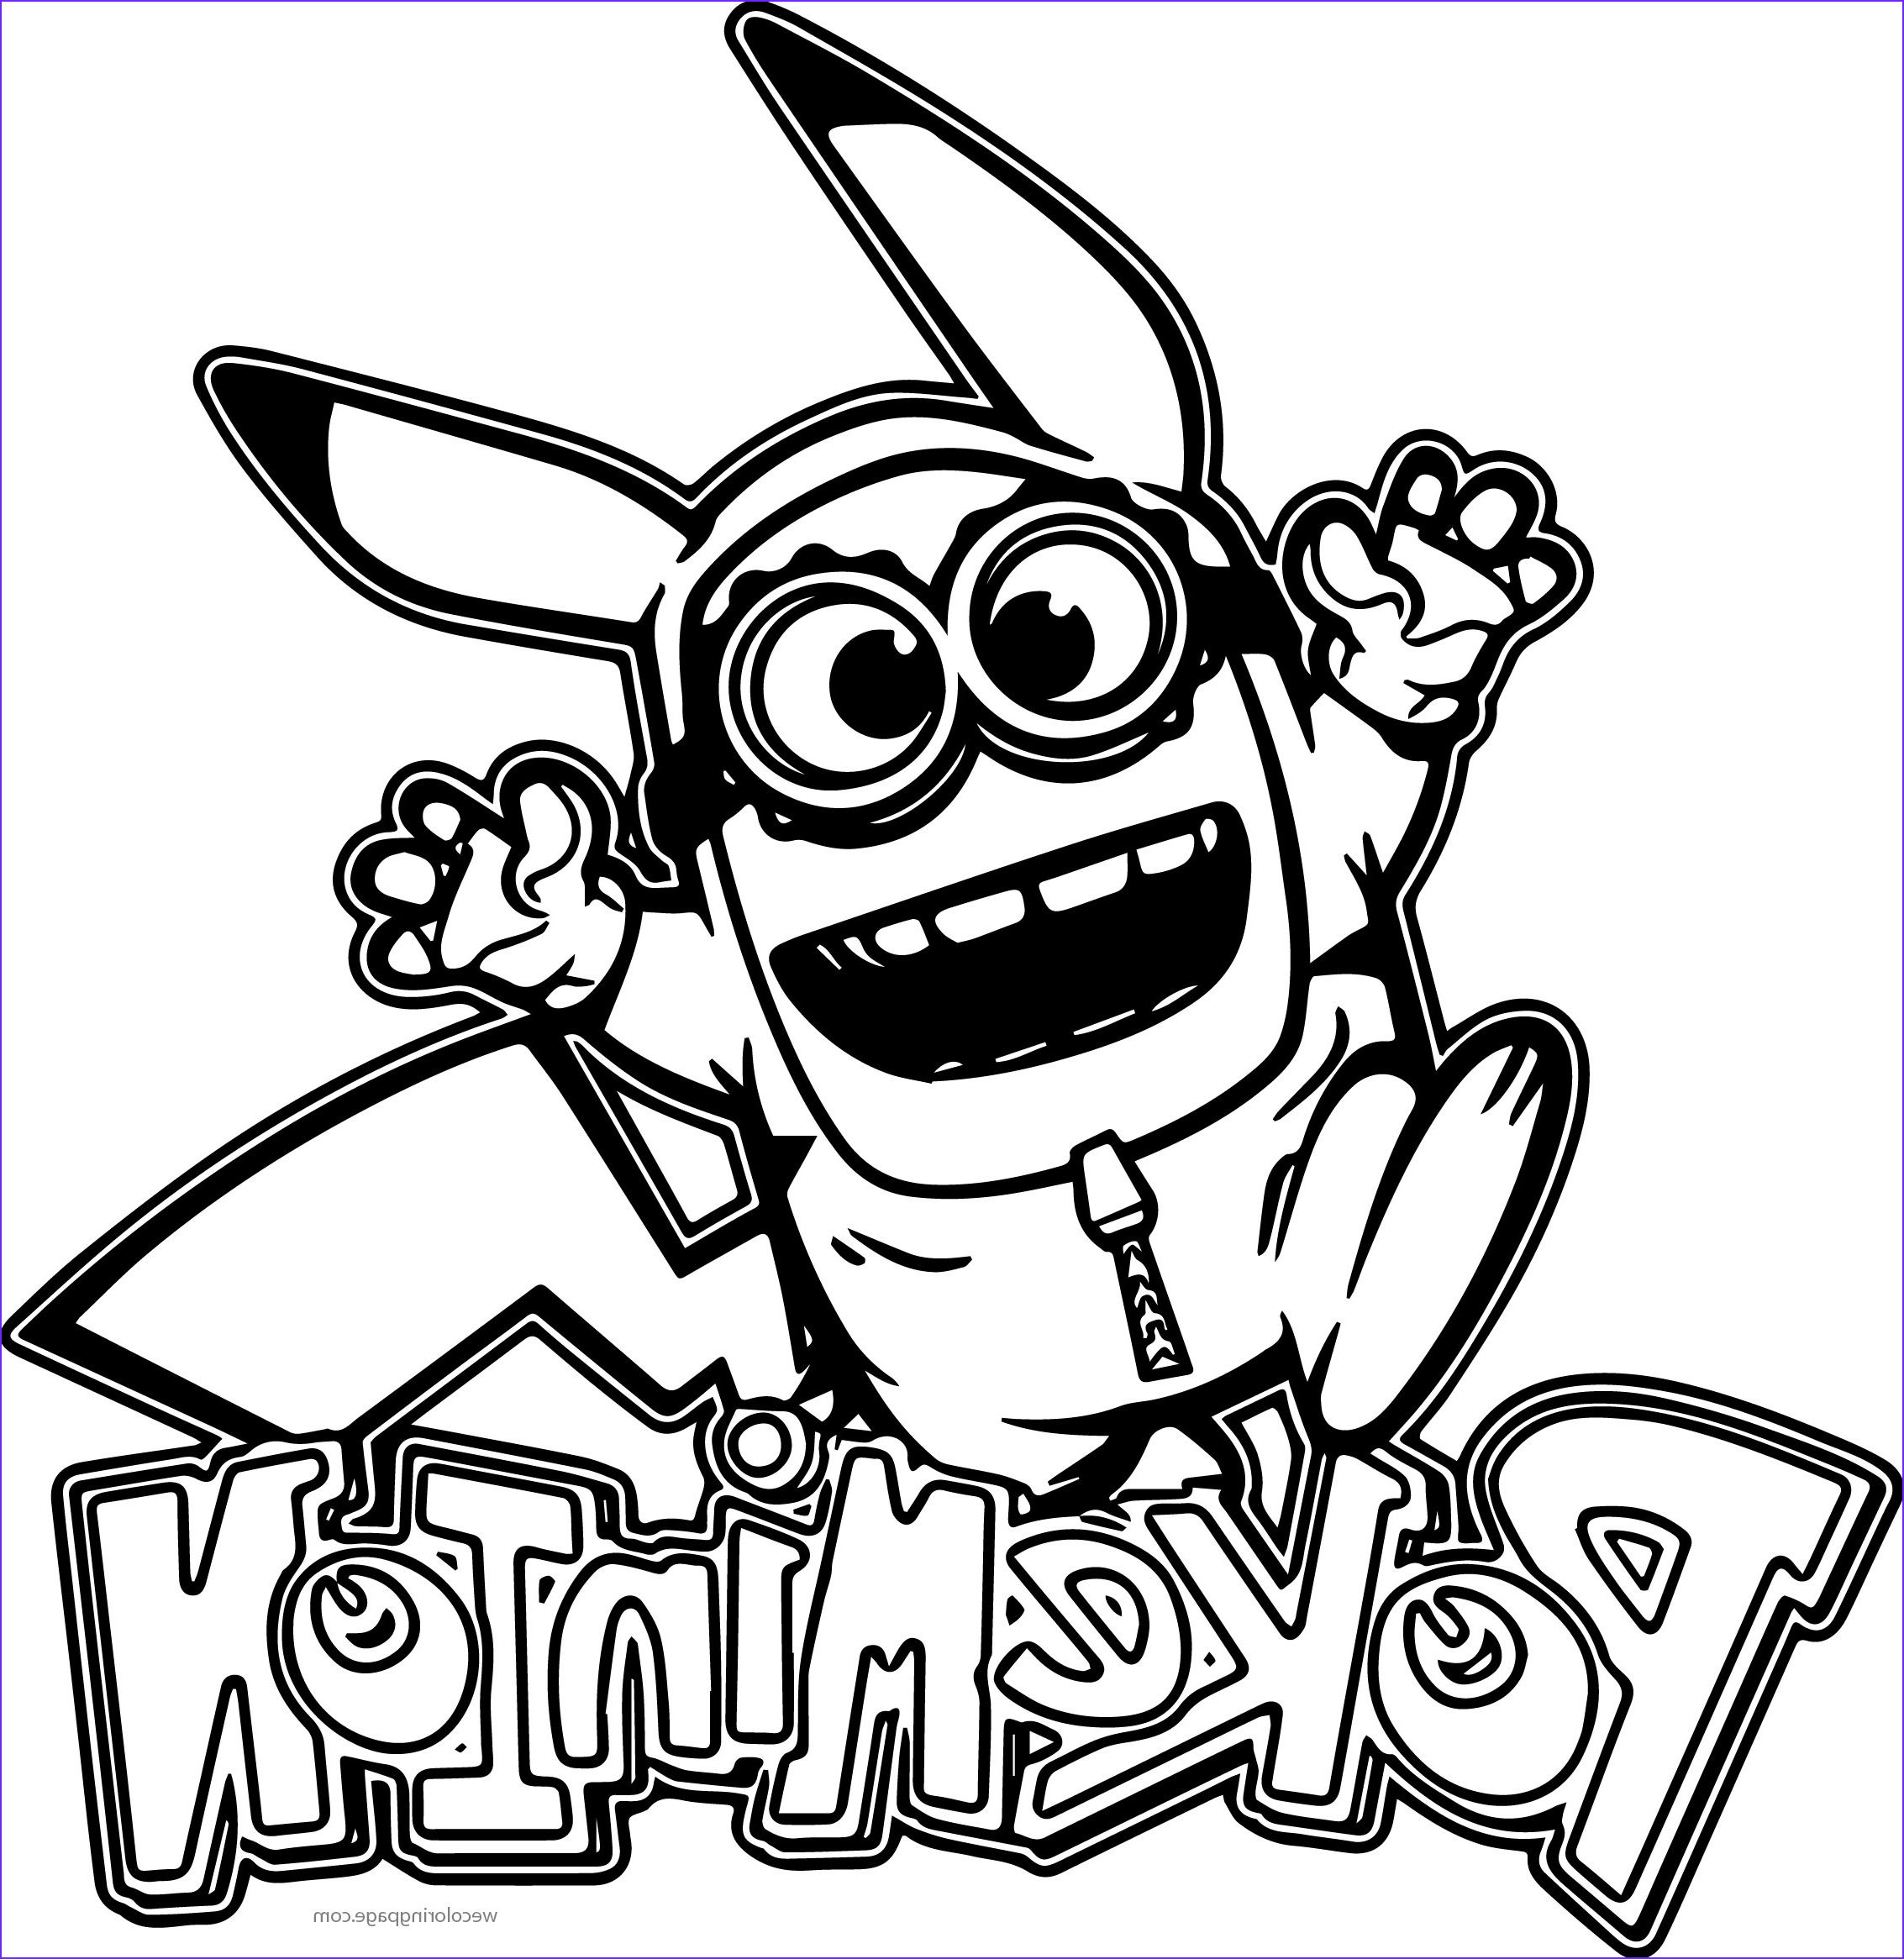 Minion Coloring Sheet New Images Minion Coloring Pages